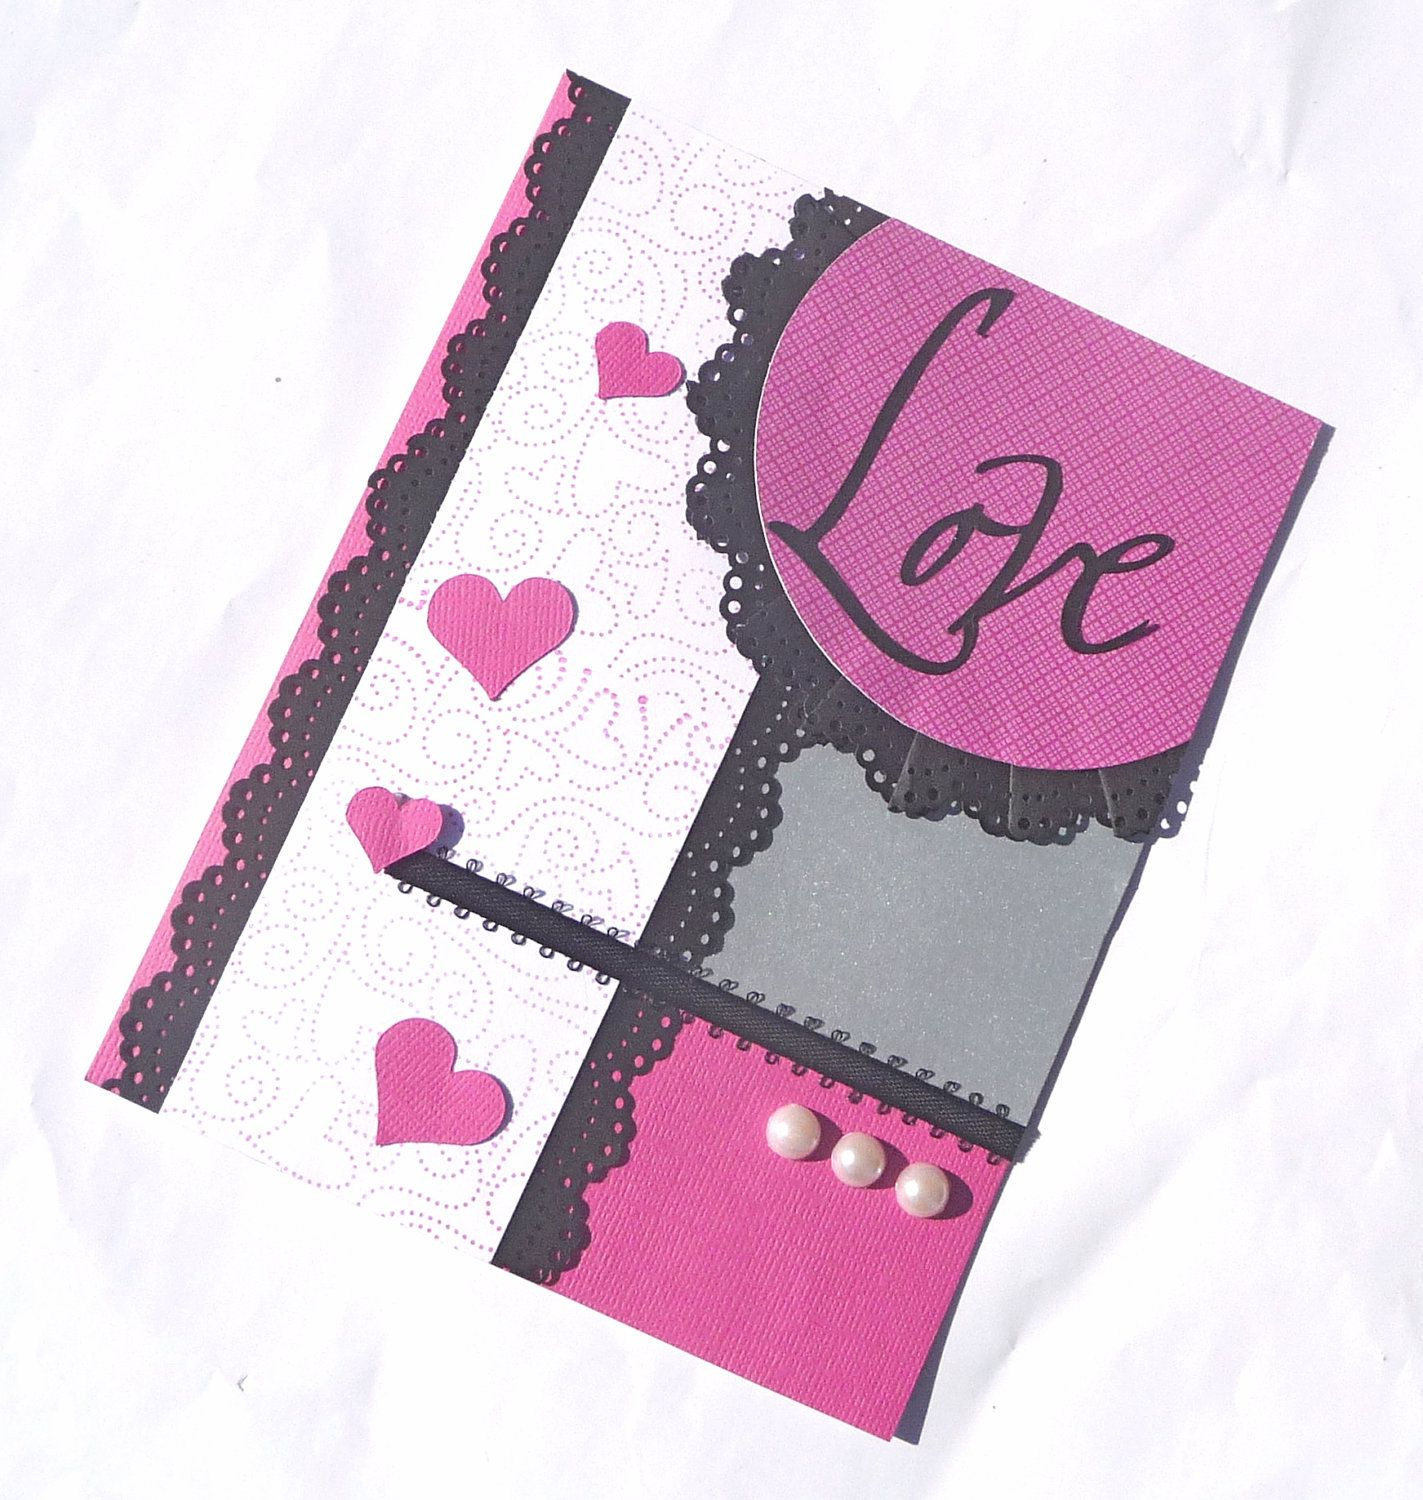 Best birthday cards rain to greeting cards shine valentine day best birthday cards rain to greeting cards shine valentine day kristyandbryce Image collections